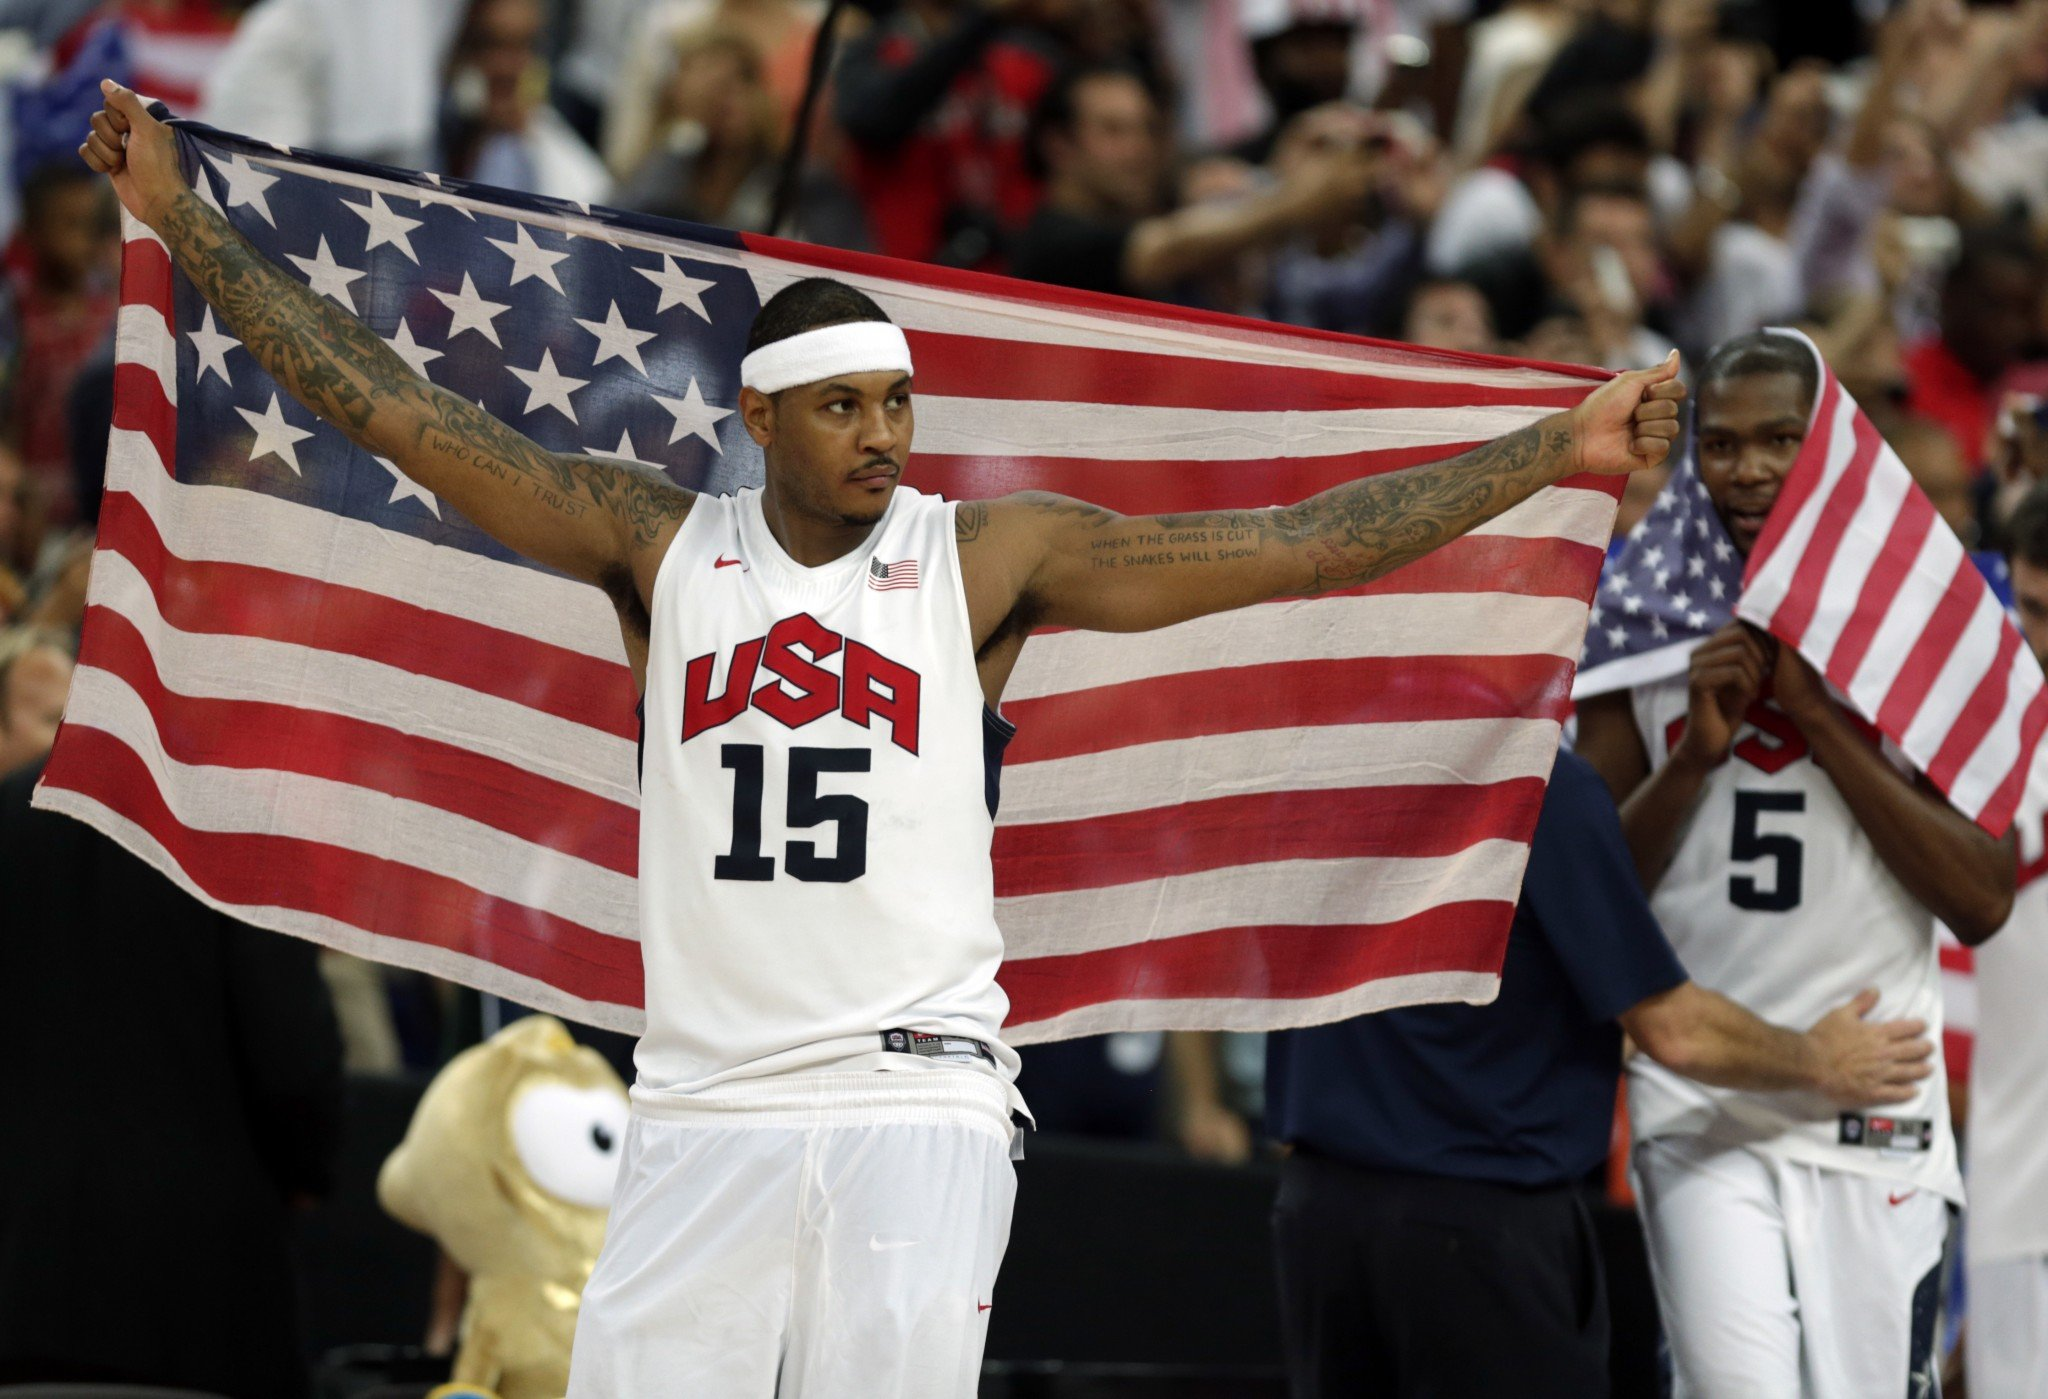 Carmelo Anthony of the United States celebrates after the men's gold medal basketball game at the 2012 Summer Olympics. (AP/Charles Krupa, File)